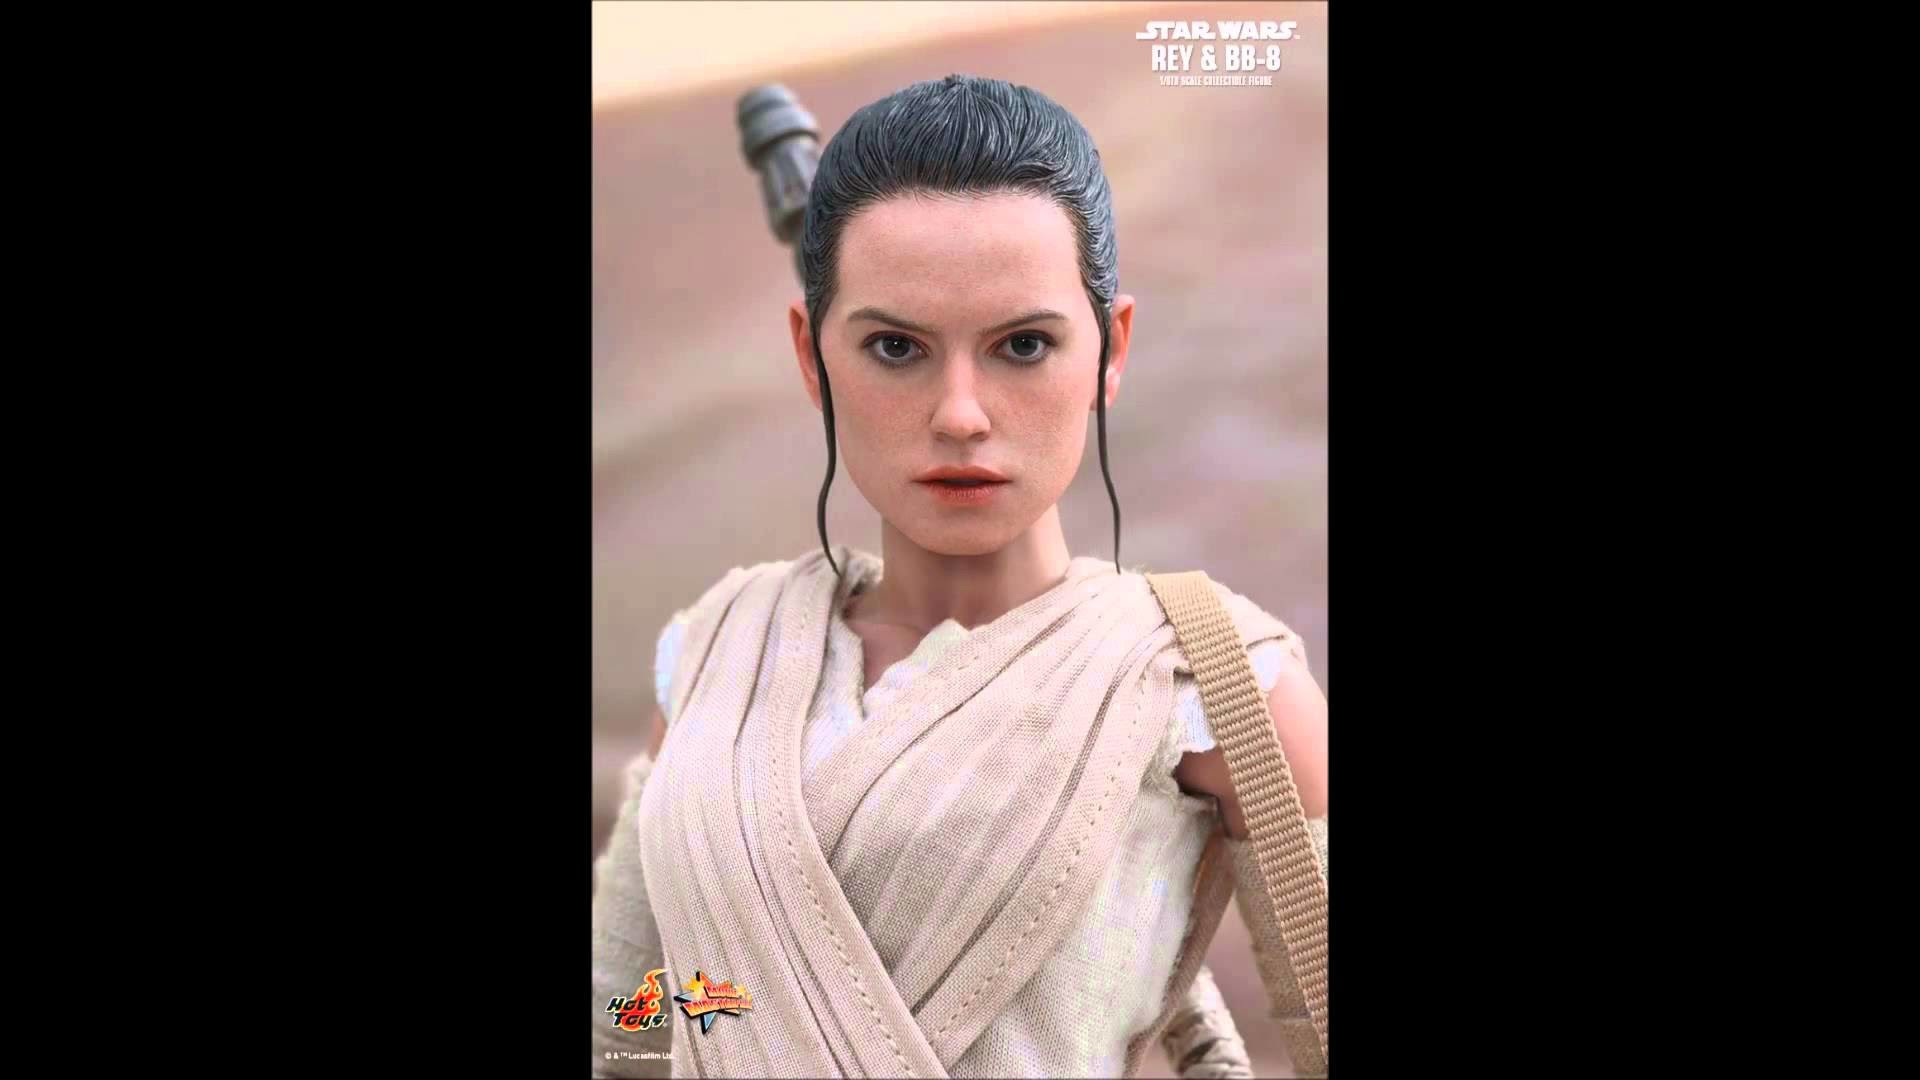 Rey Star Wars Wallpaper 74 Images